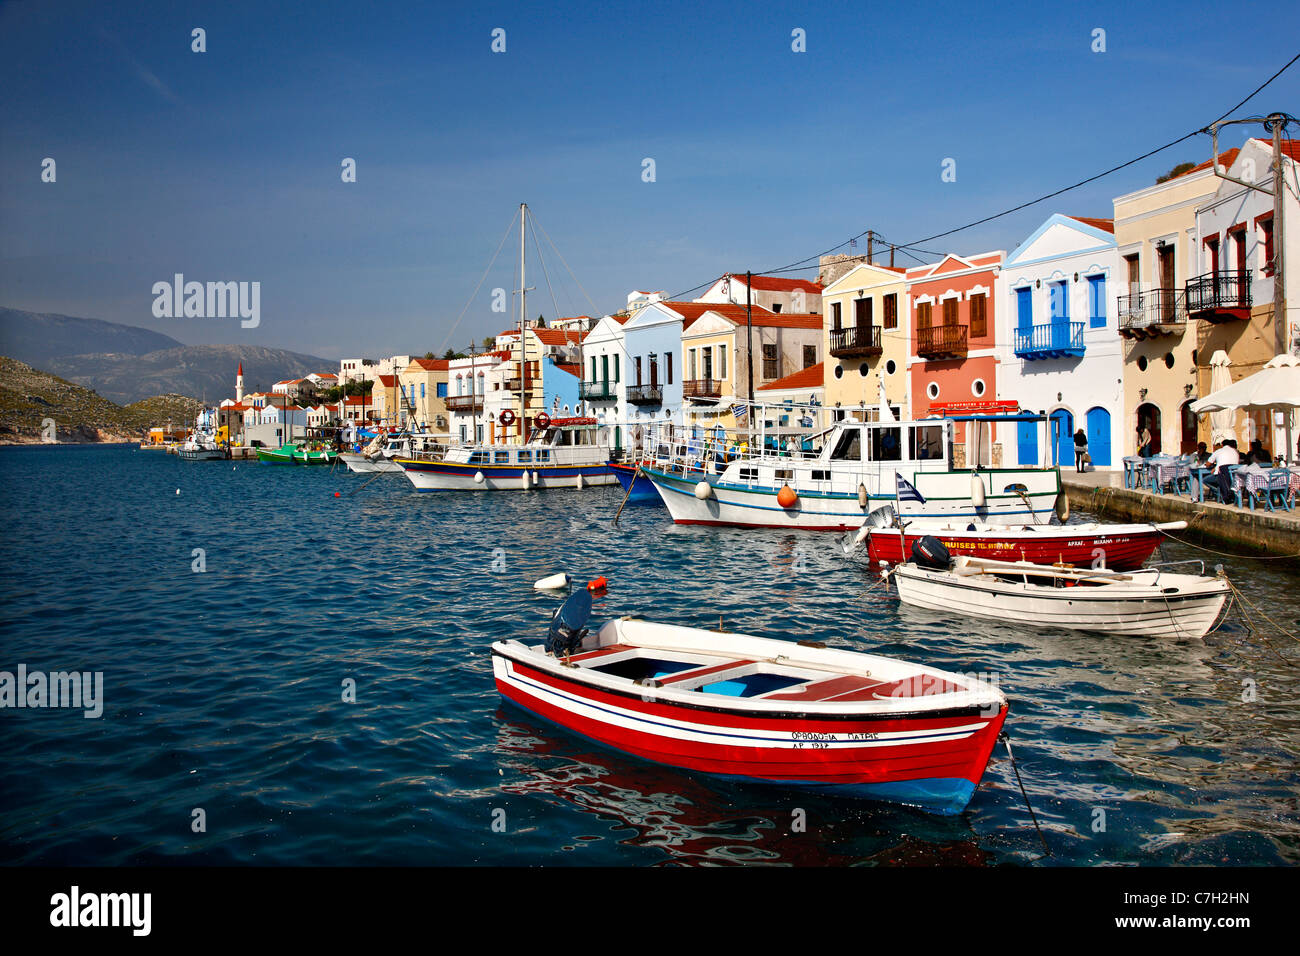 Partial view of the picturesque harbor and  village of Kastellorizo (or 'Meghisti') island, Dodecanese, - Stock Image